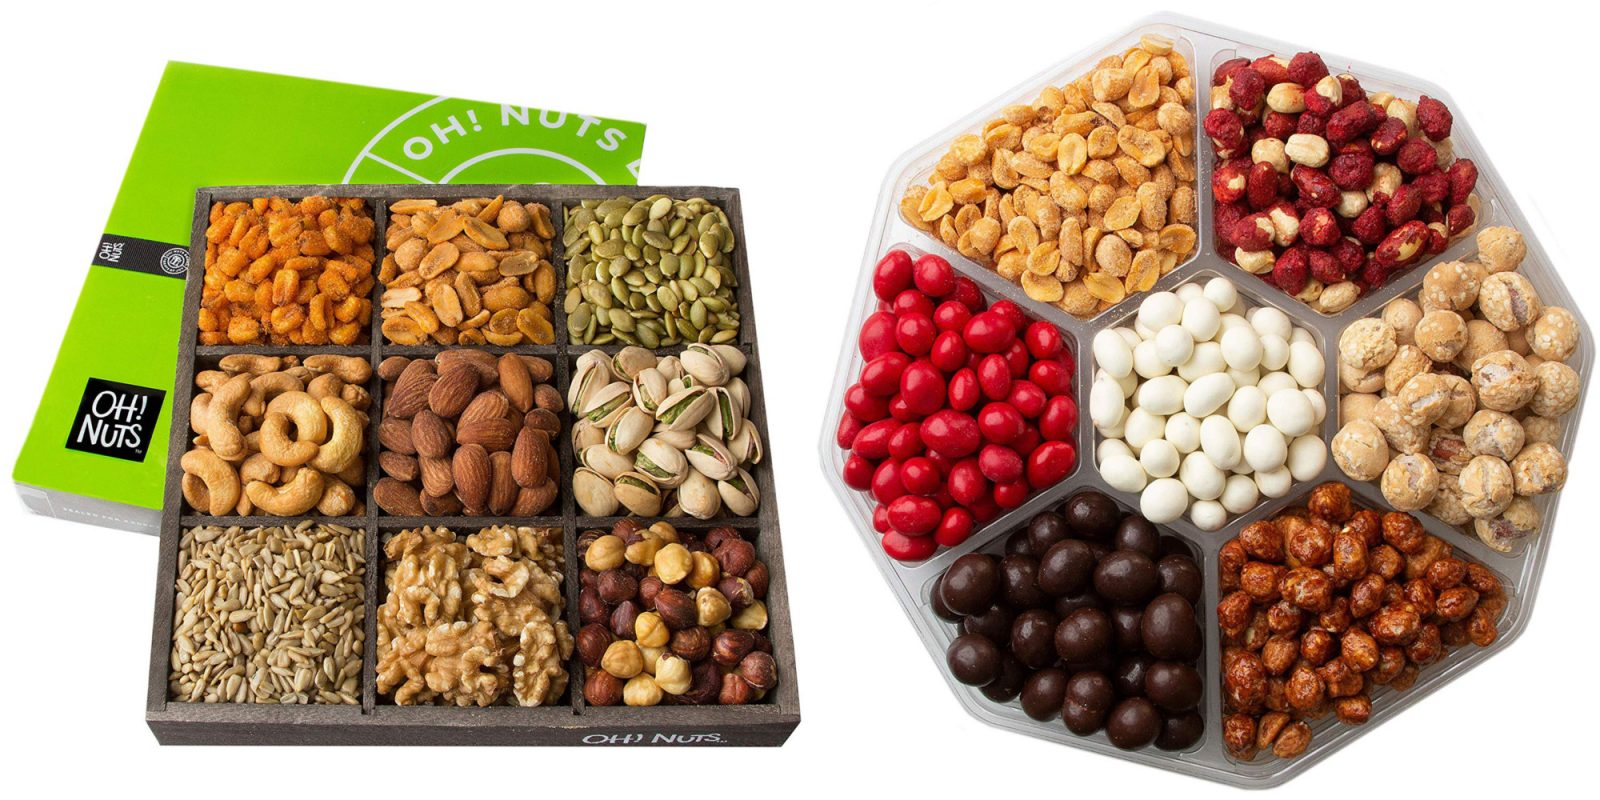 Oh! Nuts snack boxes from $20: Pistachios, chocolate pretzels, more (30% off)